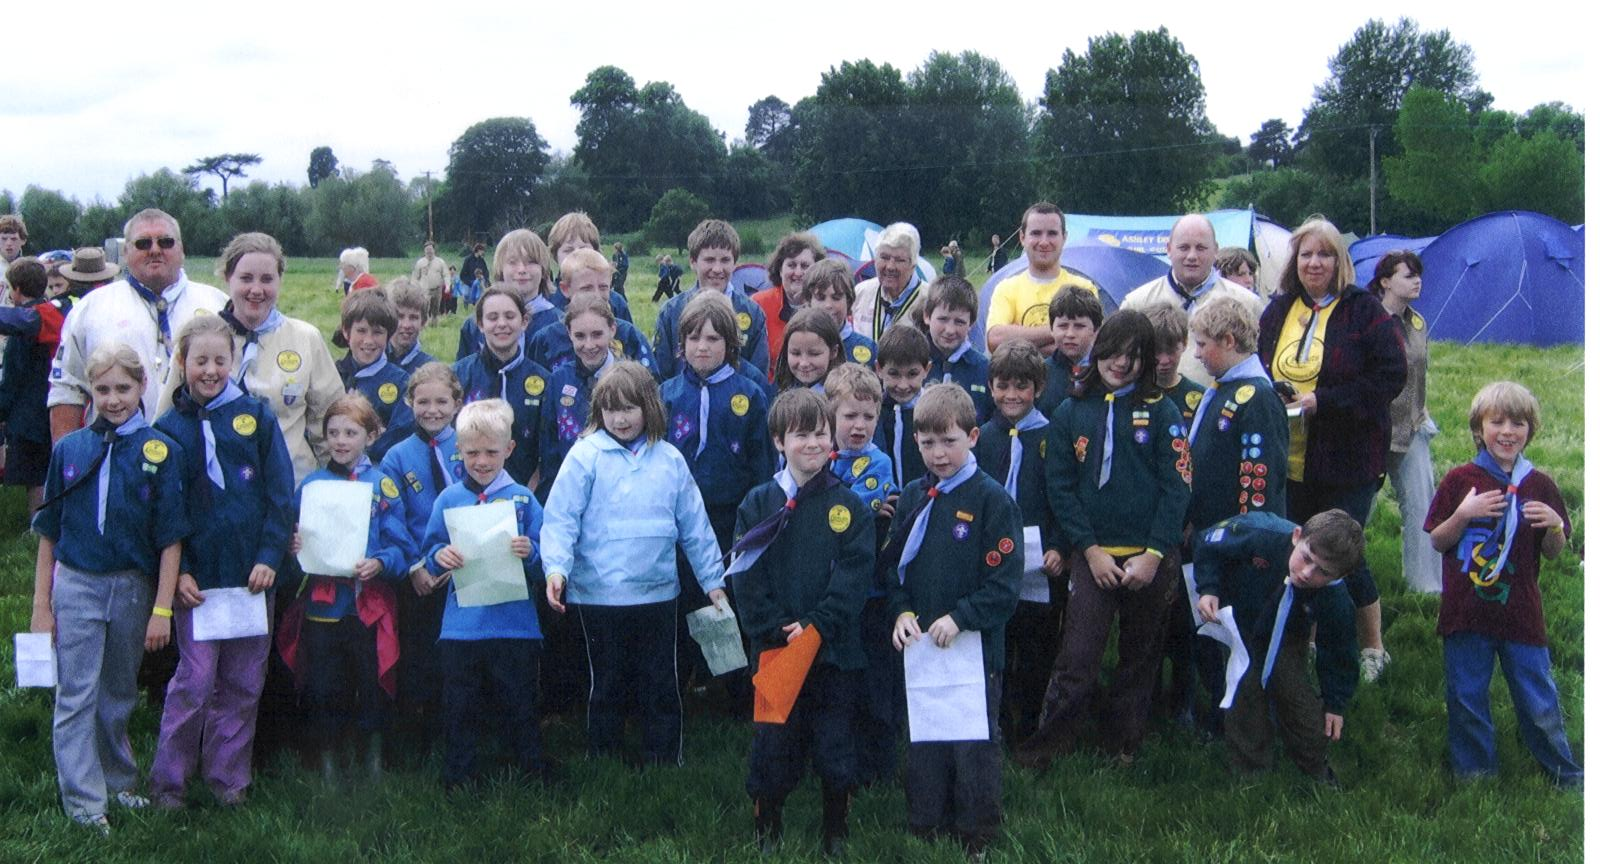 Furze Platt's contingent at the 2007 Maidenhead & District centenary camp, held in Cookham to mark the hundredth anniversary of the birth of Scouting.